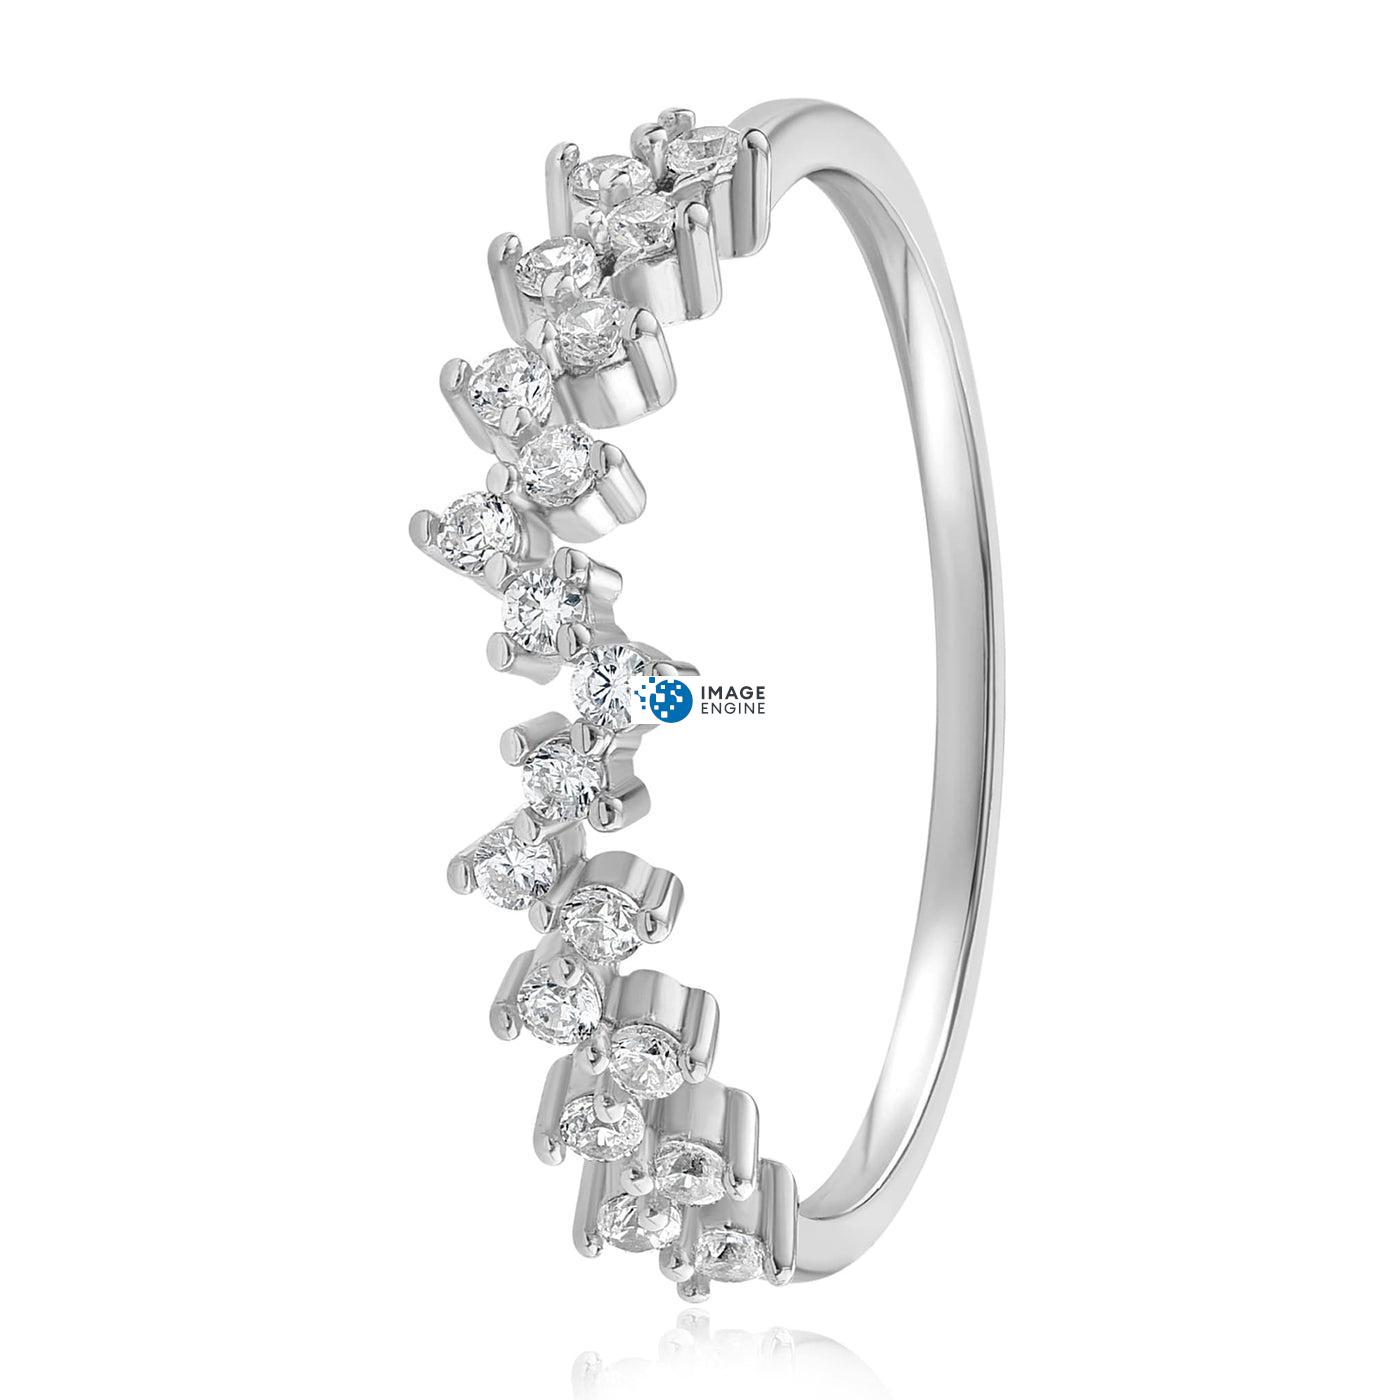 Esther Petite Cluster Ring - Side View - 925 Sterling Silver